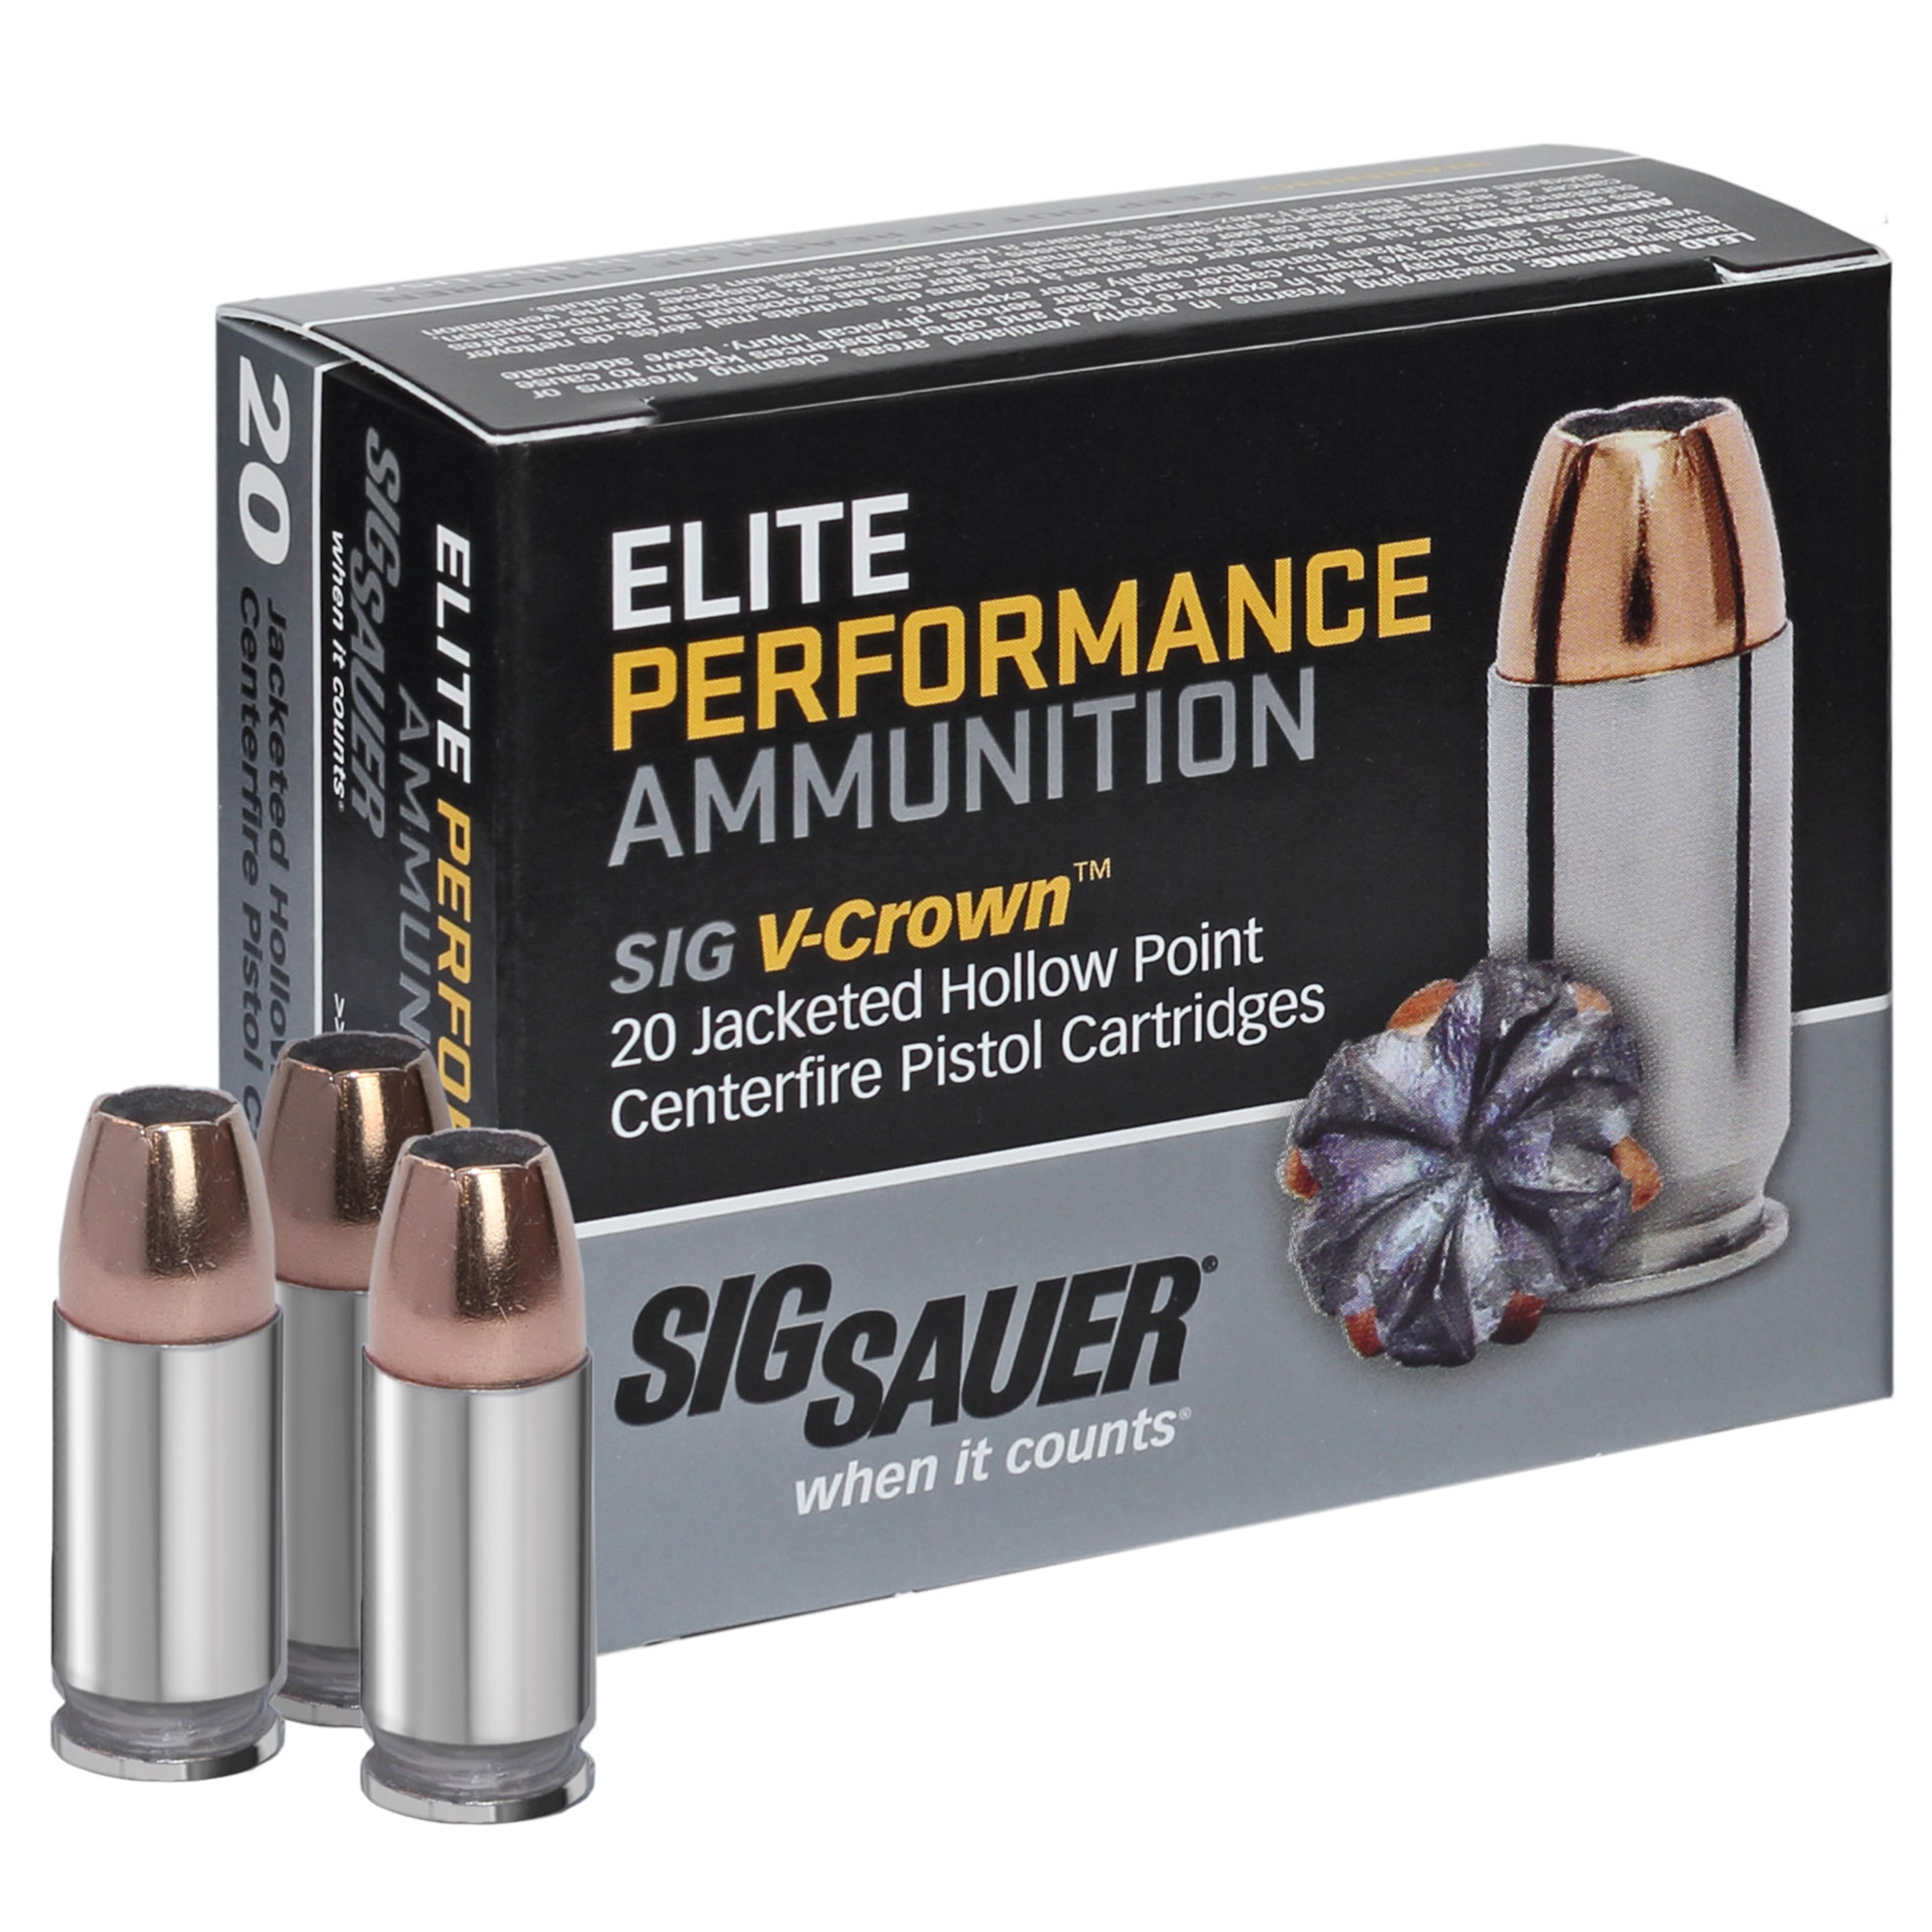 SIG Sauer Elite Performance V-Crown Ammo, 9mm Luger, 115-gr, JHP